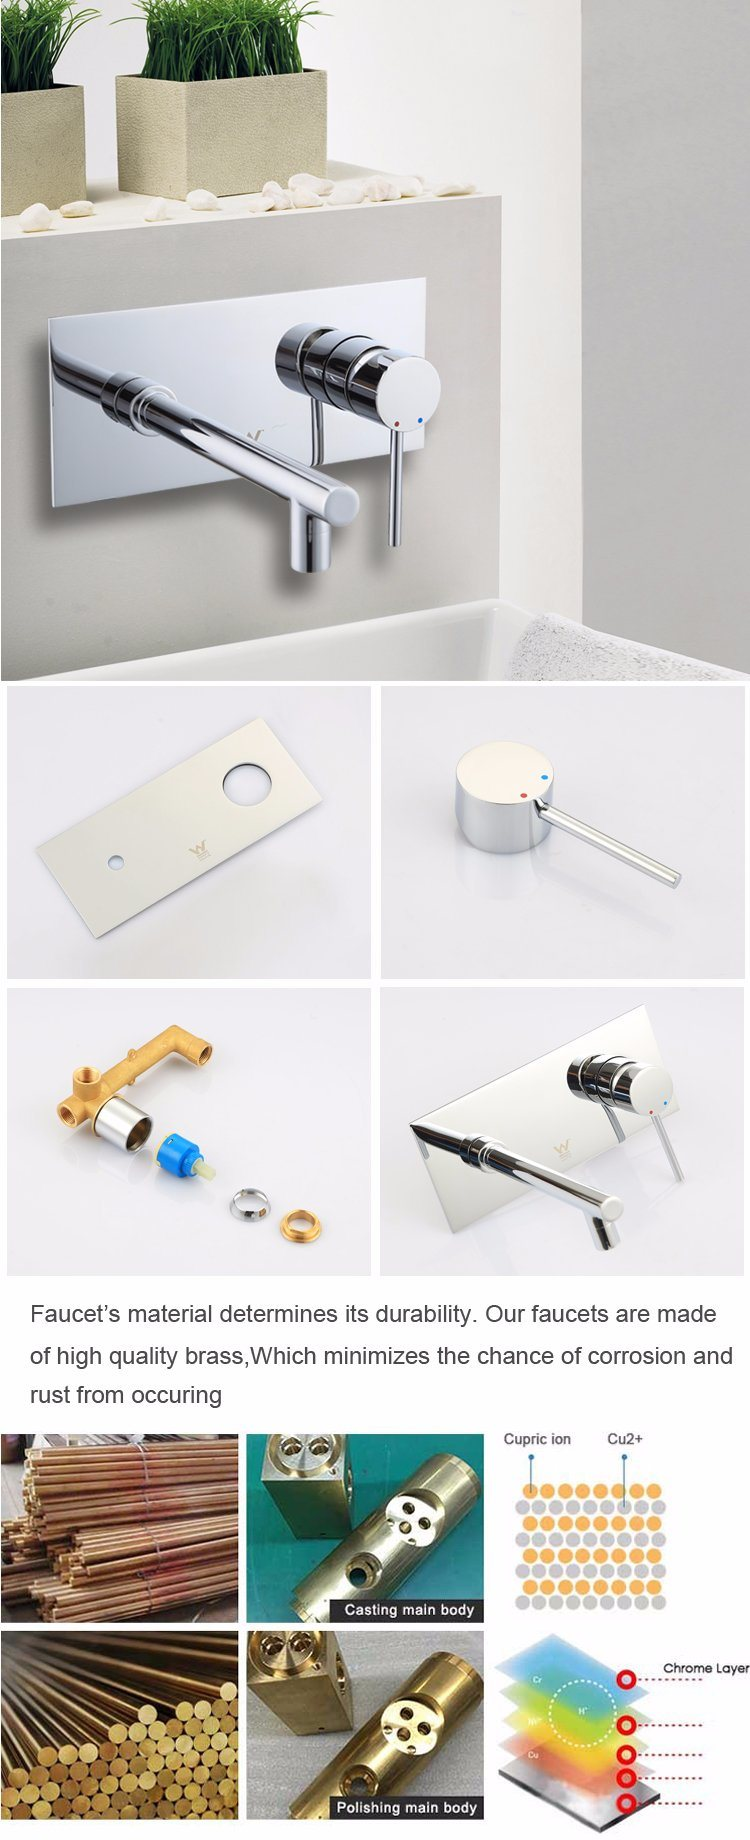 China Manufacturer in Wall Concealed Mixer Tap Basin Water Faucets for Bathroom